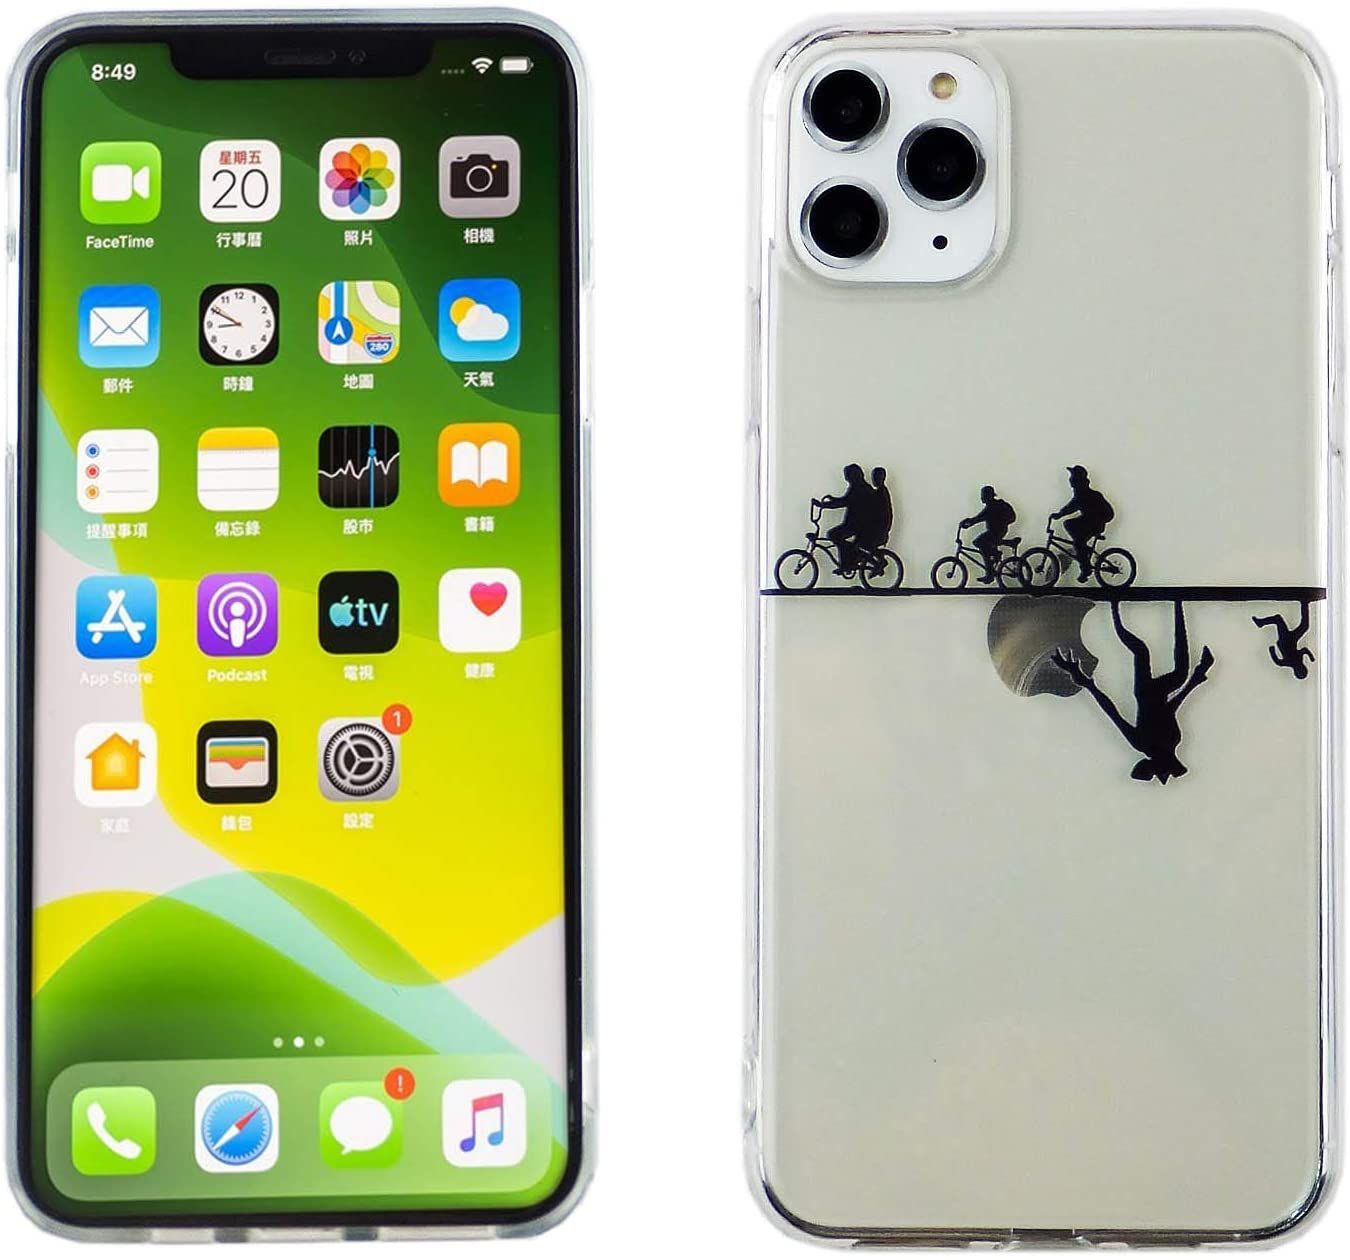 The Best Iphone Deals Get An Iphone 11 Pro Max For Free Iphone Deals Best Iphone Deals Iphone 11